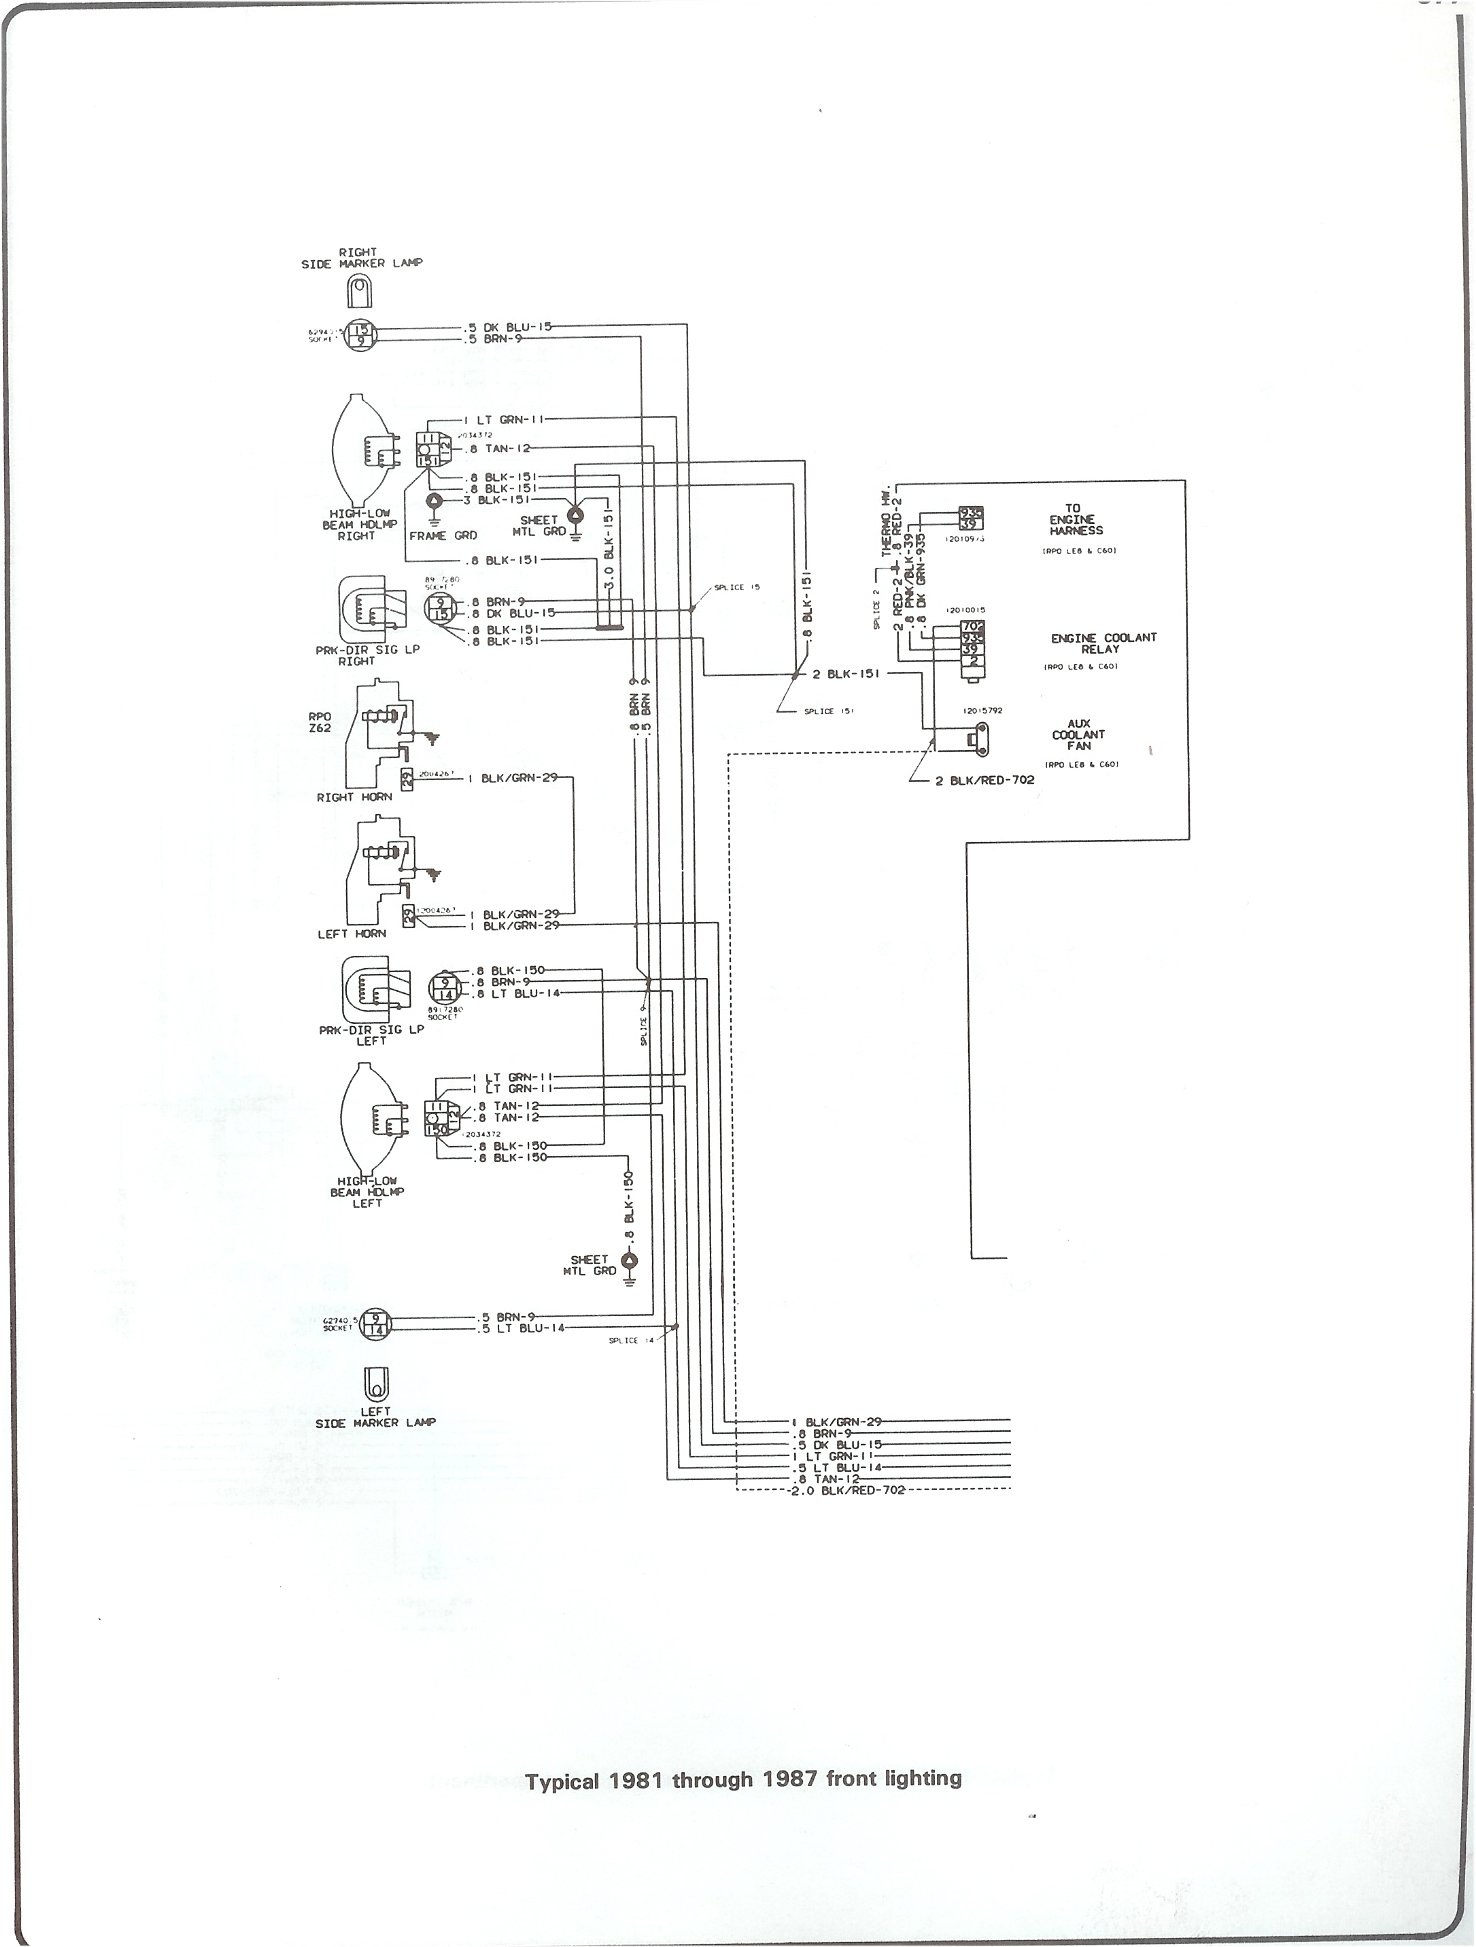 3azzv Need Ignition Circuit Wiring Diagram 99 Oldsmobile also Wiring Diagram For 2002 Pt Cruiser additionally Delco Remy Hei Distributor Wiring Diagram in addition Toyota 3 0 V6 Engine Wiring Diagram moreover Index php. on chevy ignition wiring diagram